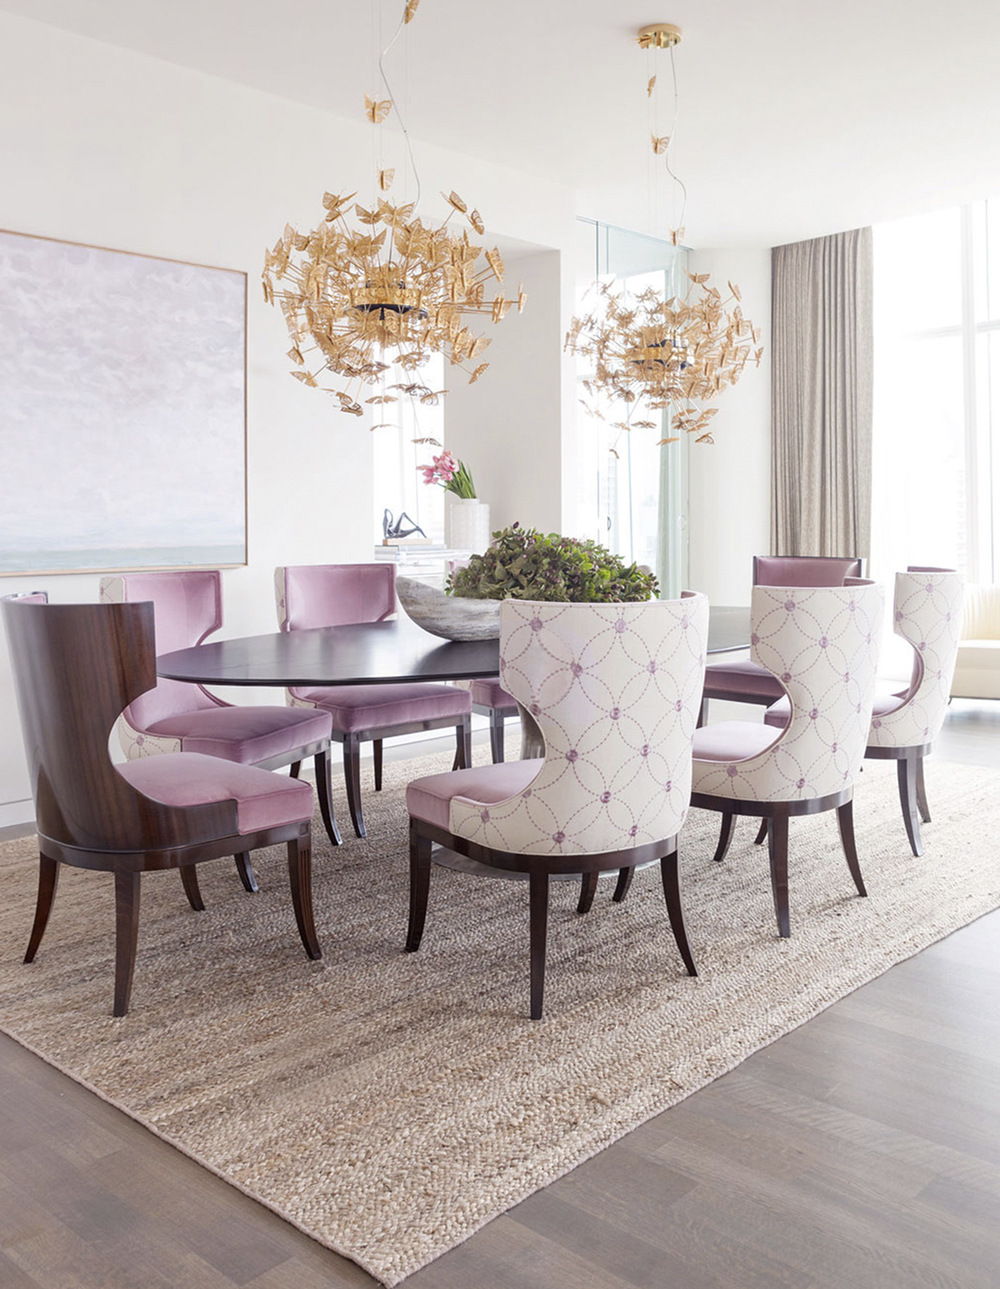 10 Ideas on How to Make Your Dining Room Designs Look Amazing6